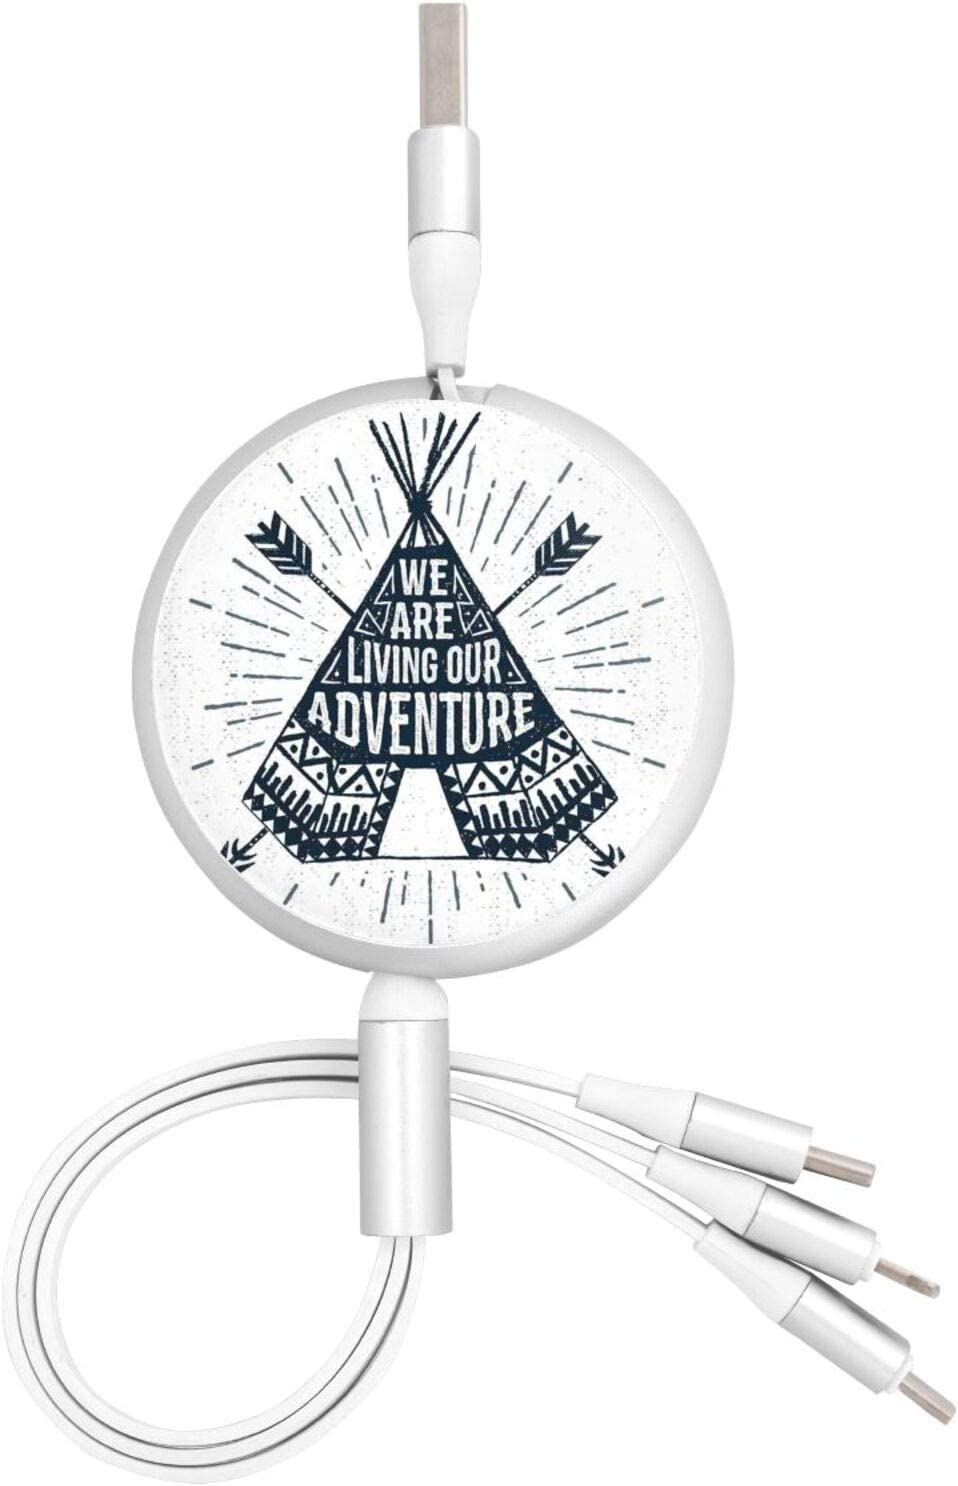 Multi Charging Cable Portable 3 in 1 Teepee Crossed Arrows We are Living Our Adventure Inspirational USB Cable USB Power Cords for Cell Phone Tablets and More Devices Charging